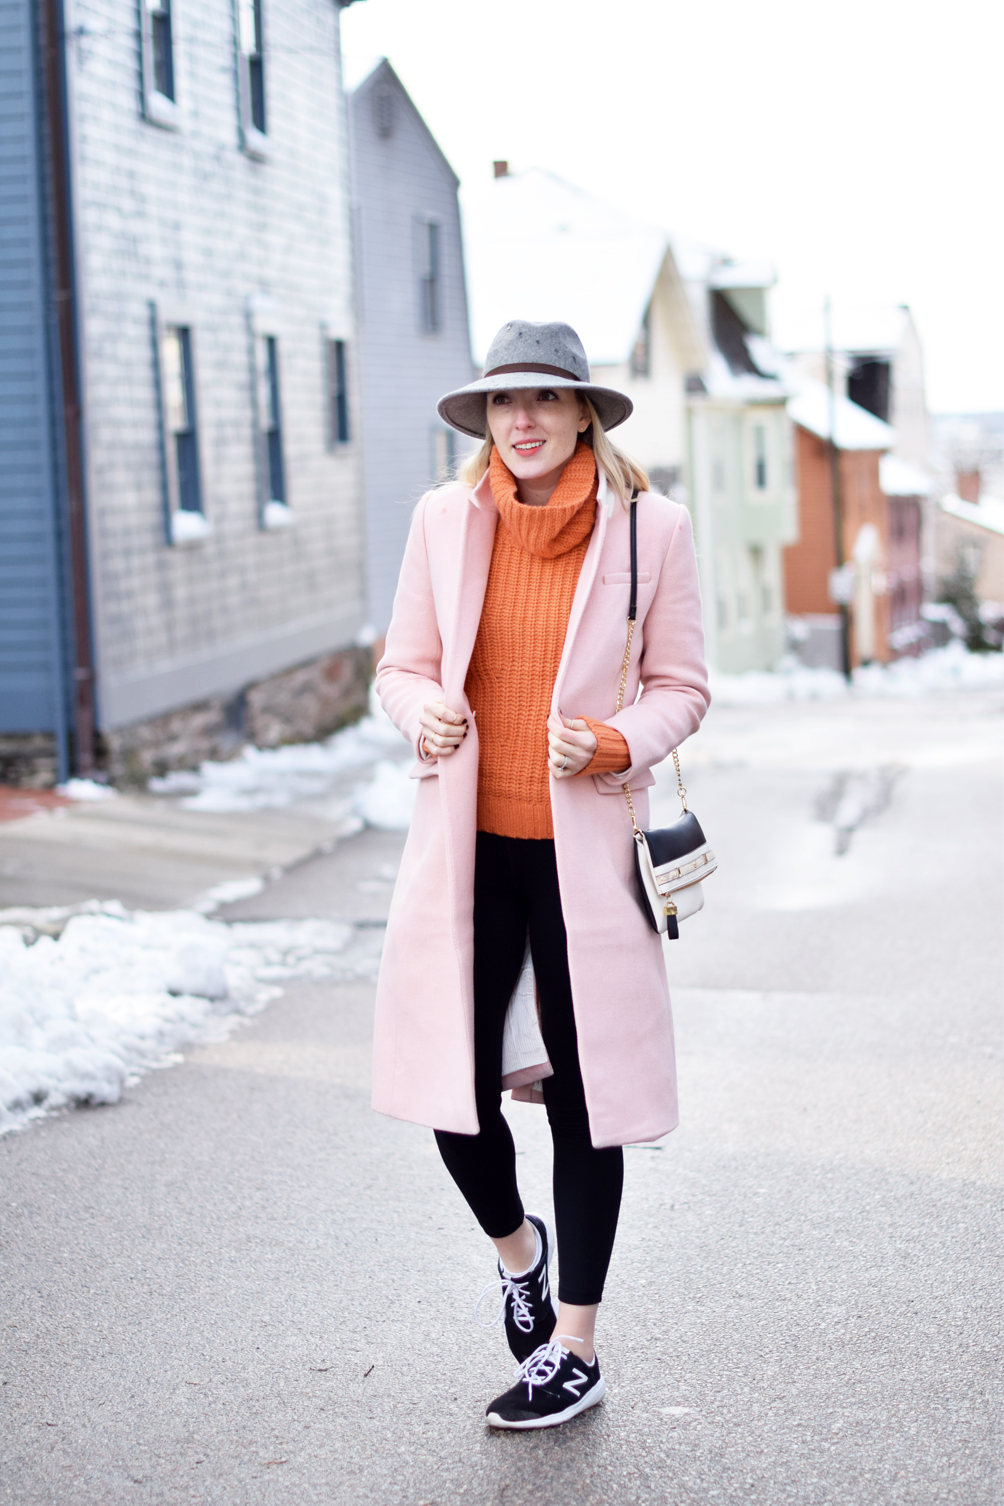 women's winter athleisure outfit ideas